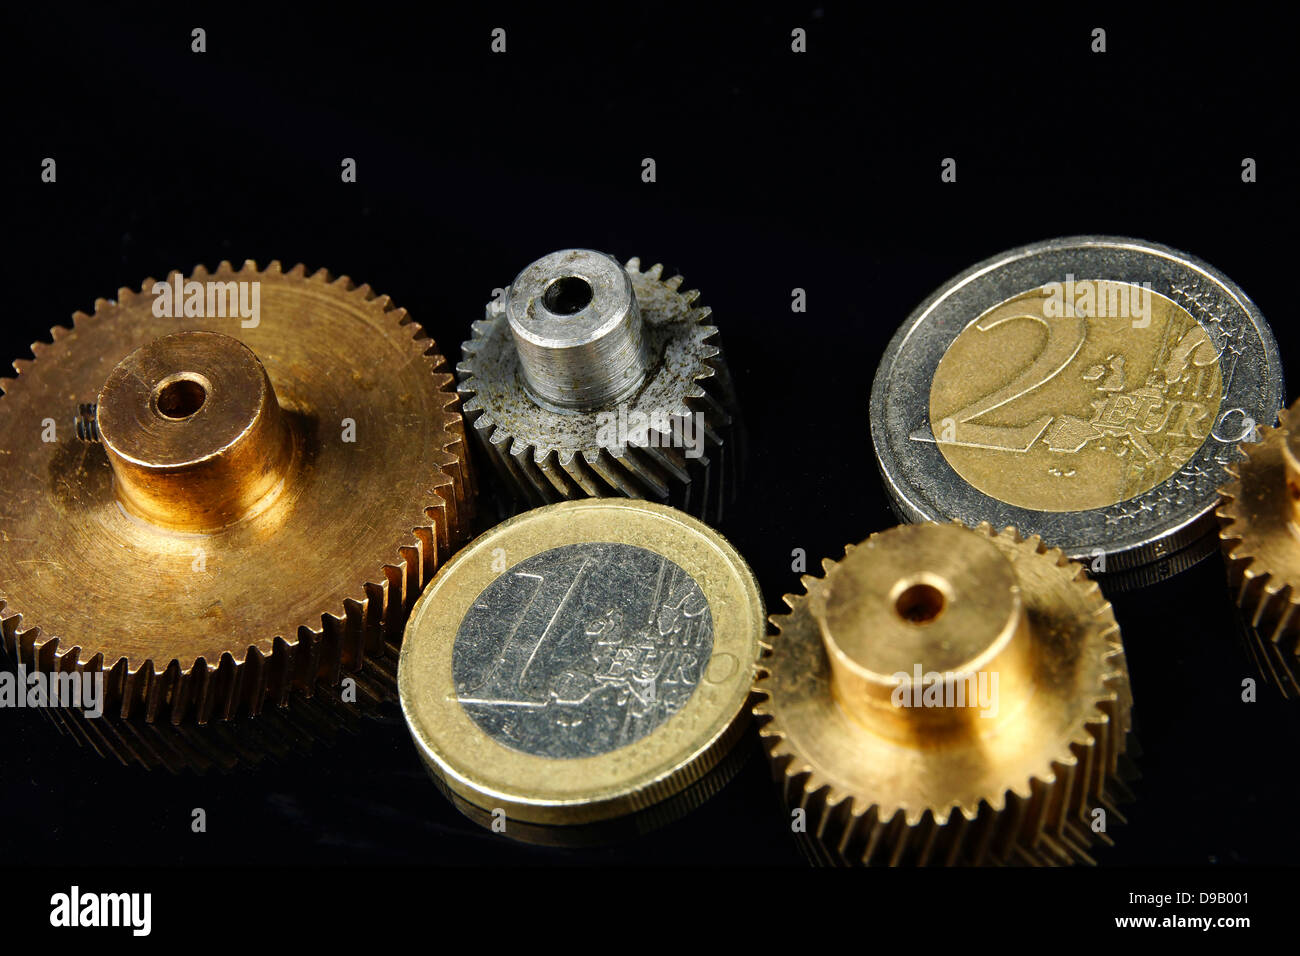 Euro coins as gearing part mechanism, close up - Stock Image